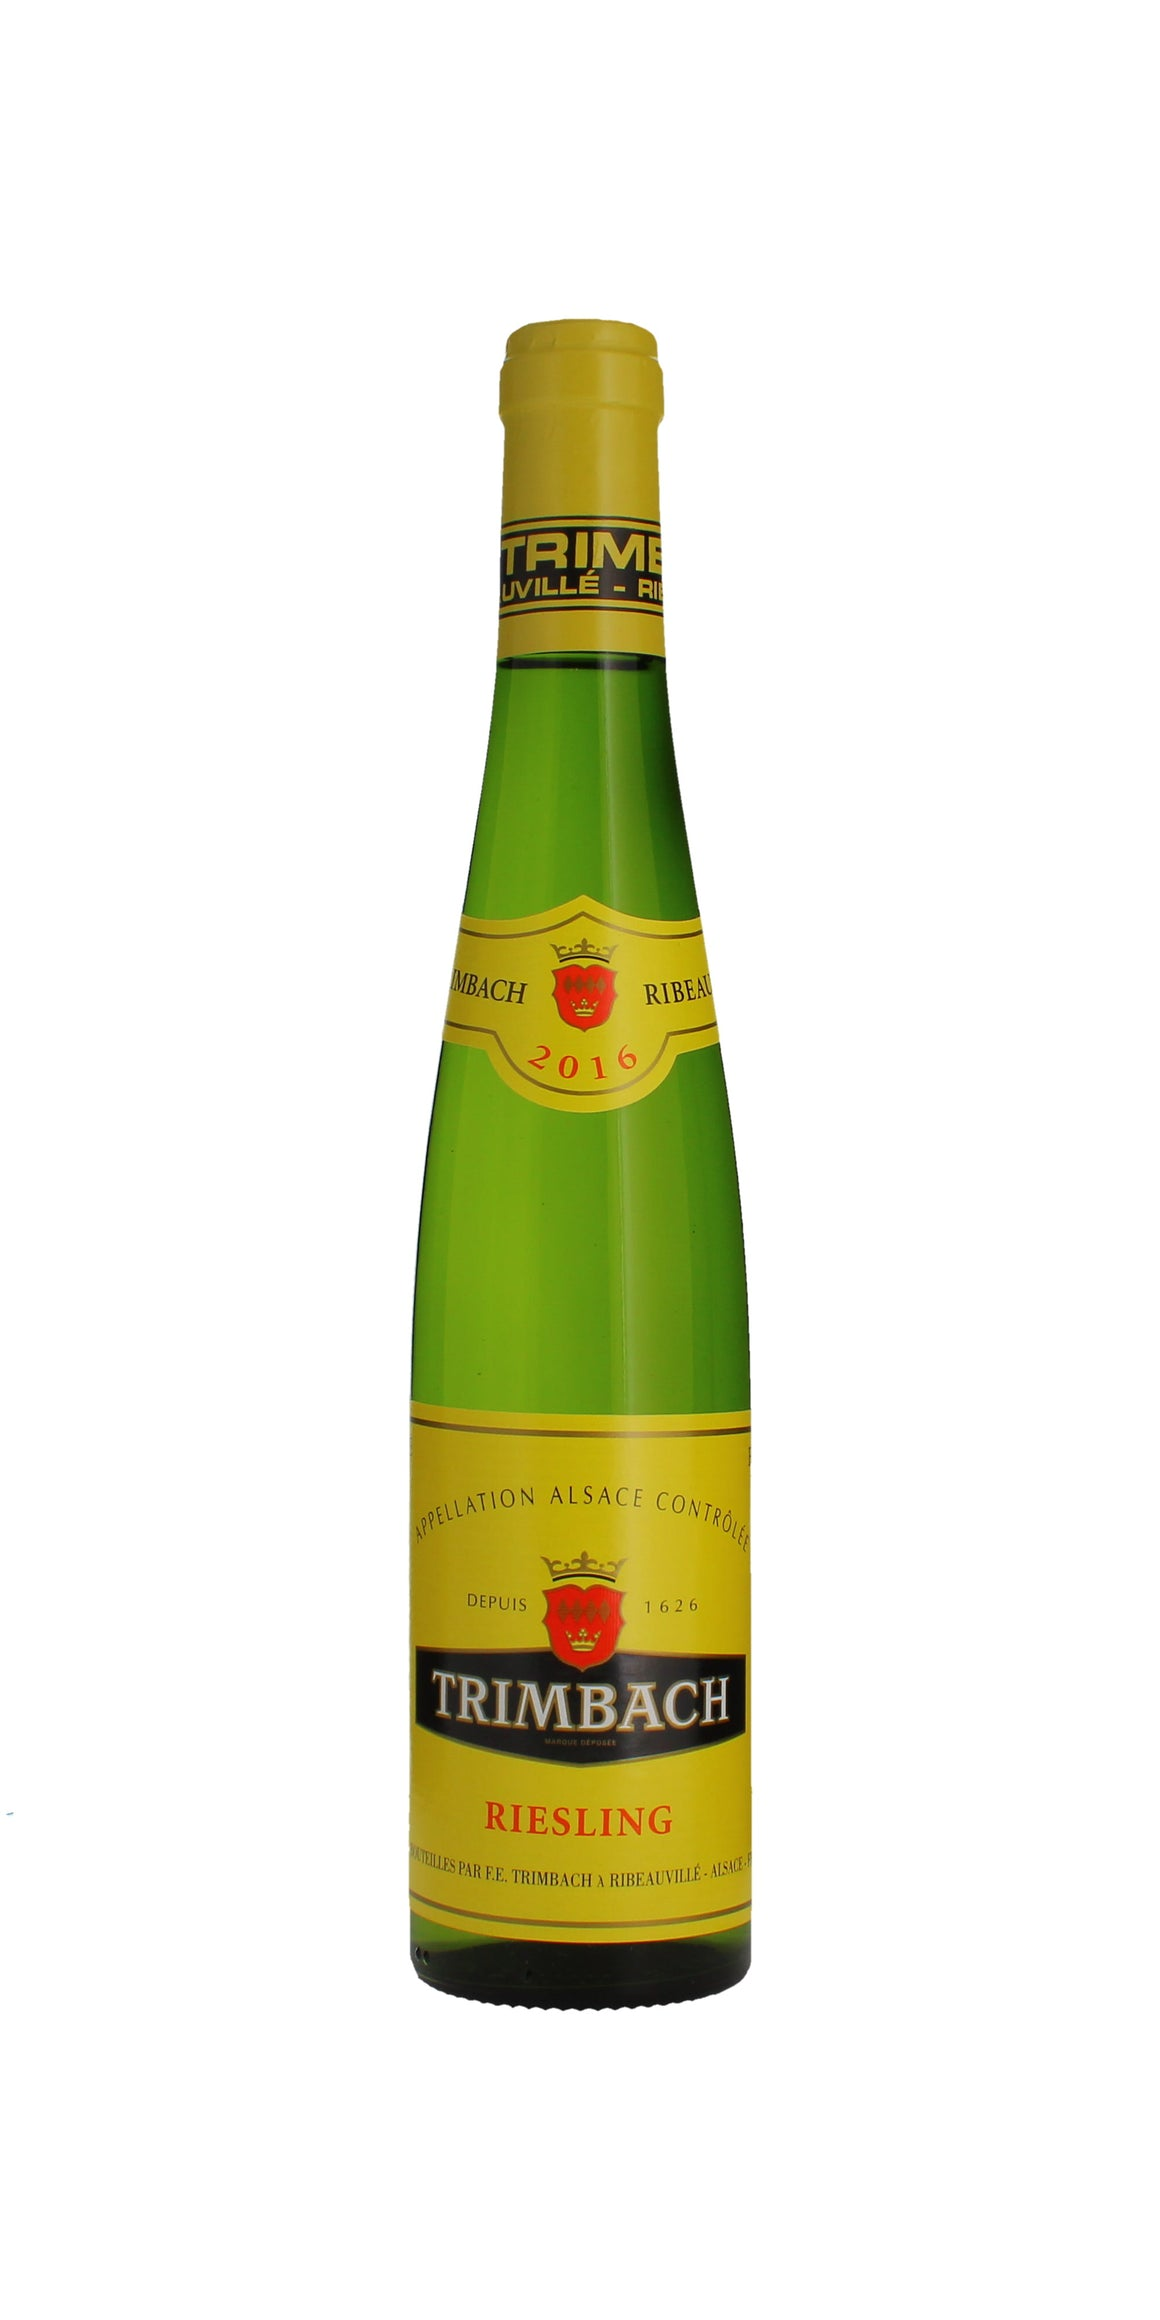 F E Trimbach Riesling 2016 HALF BOTTLE 37.5CL